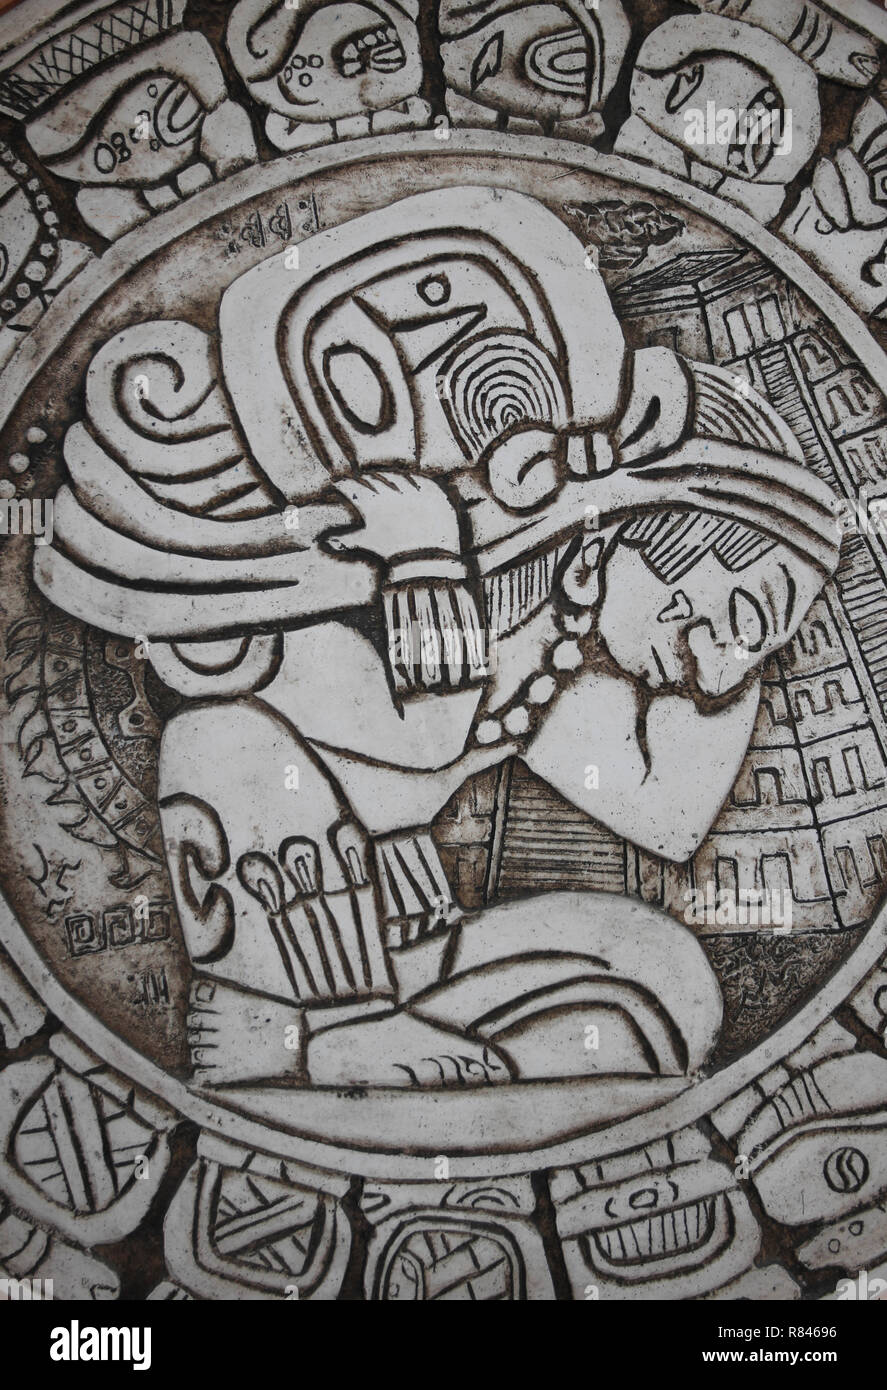 Detail on the Mayan Haab' Calendar Depicting The Burden Of Time - Stock Image